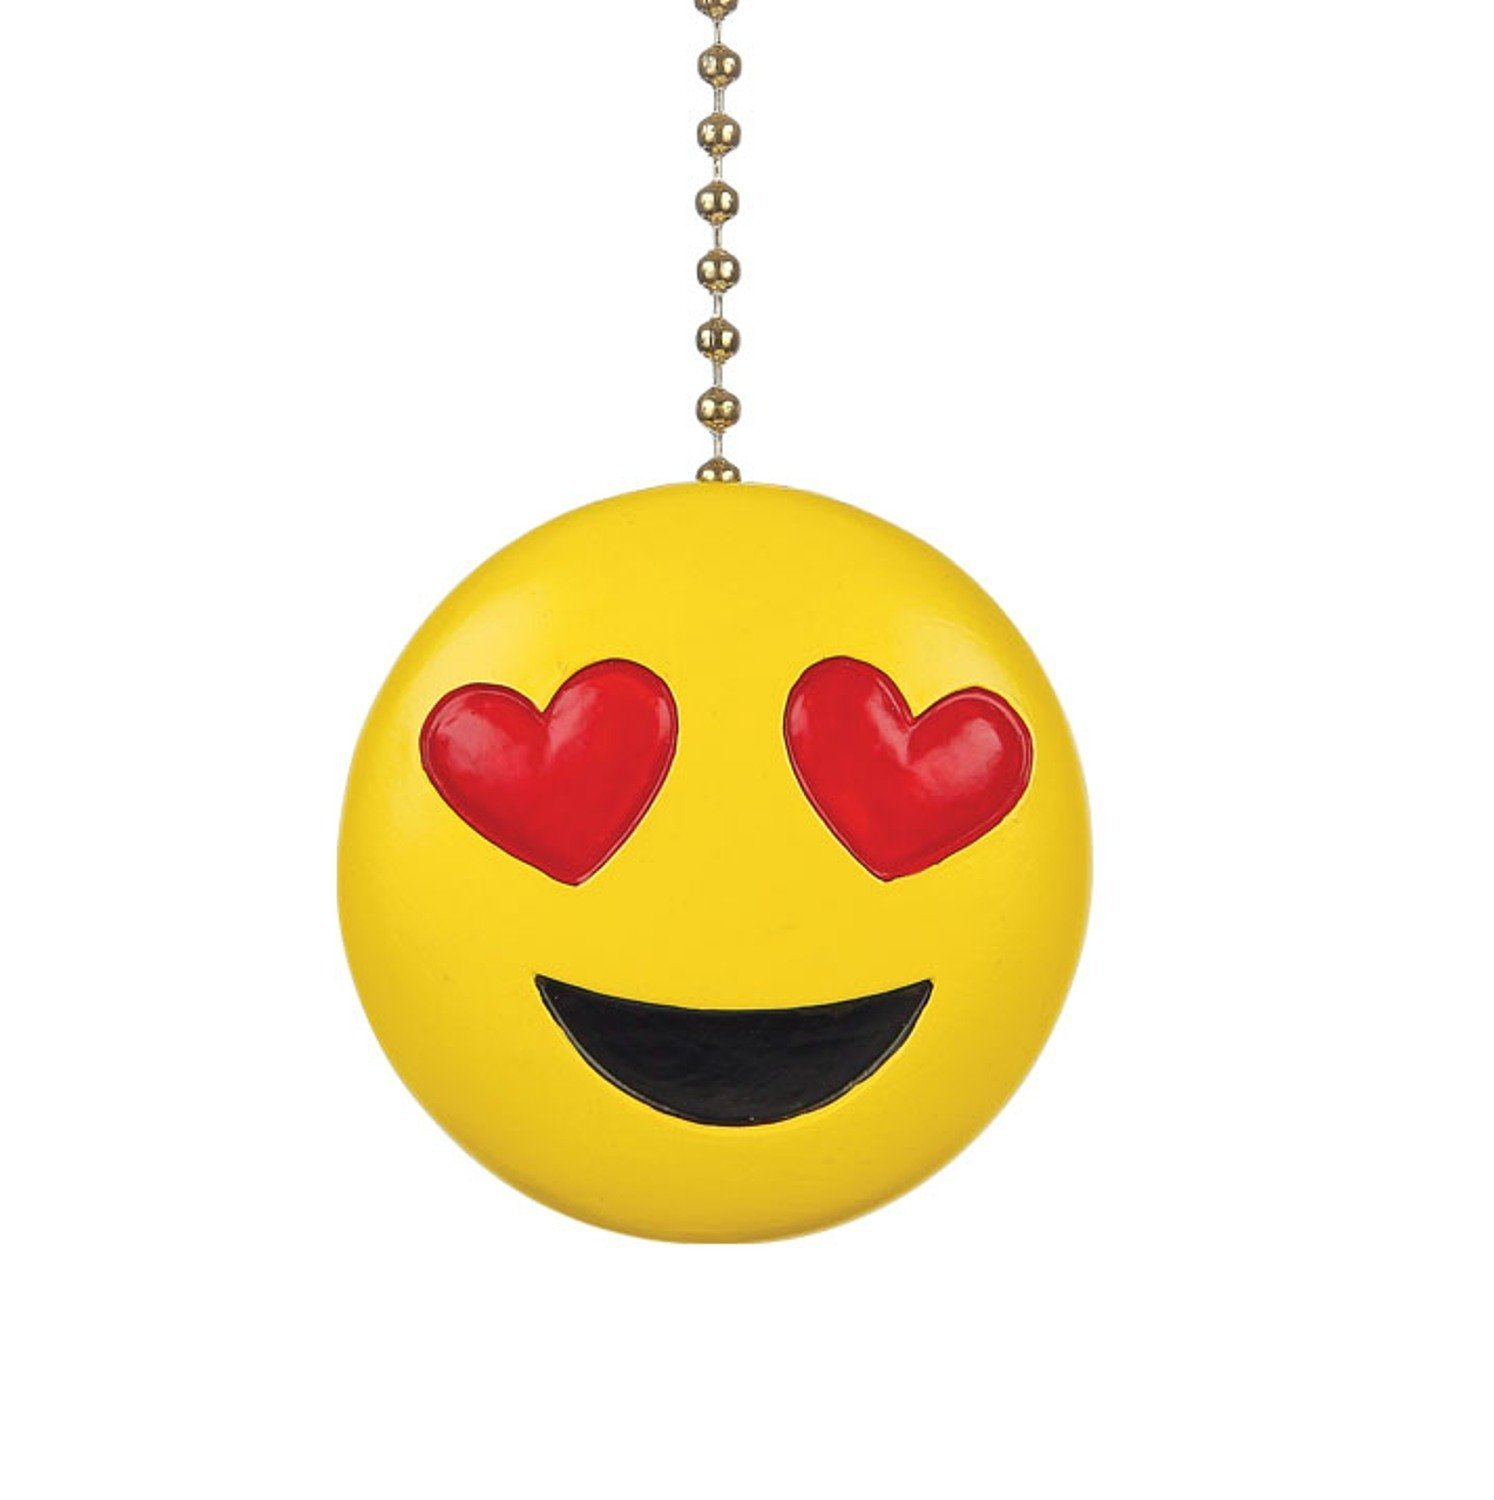 Clementine Designs Heart Eyes Smiling Emoji Decorative Ceiling Fan Light Dimensional Pull